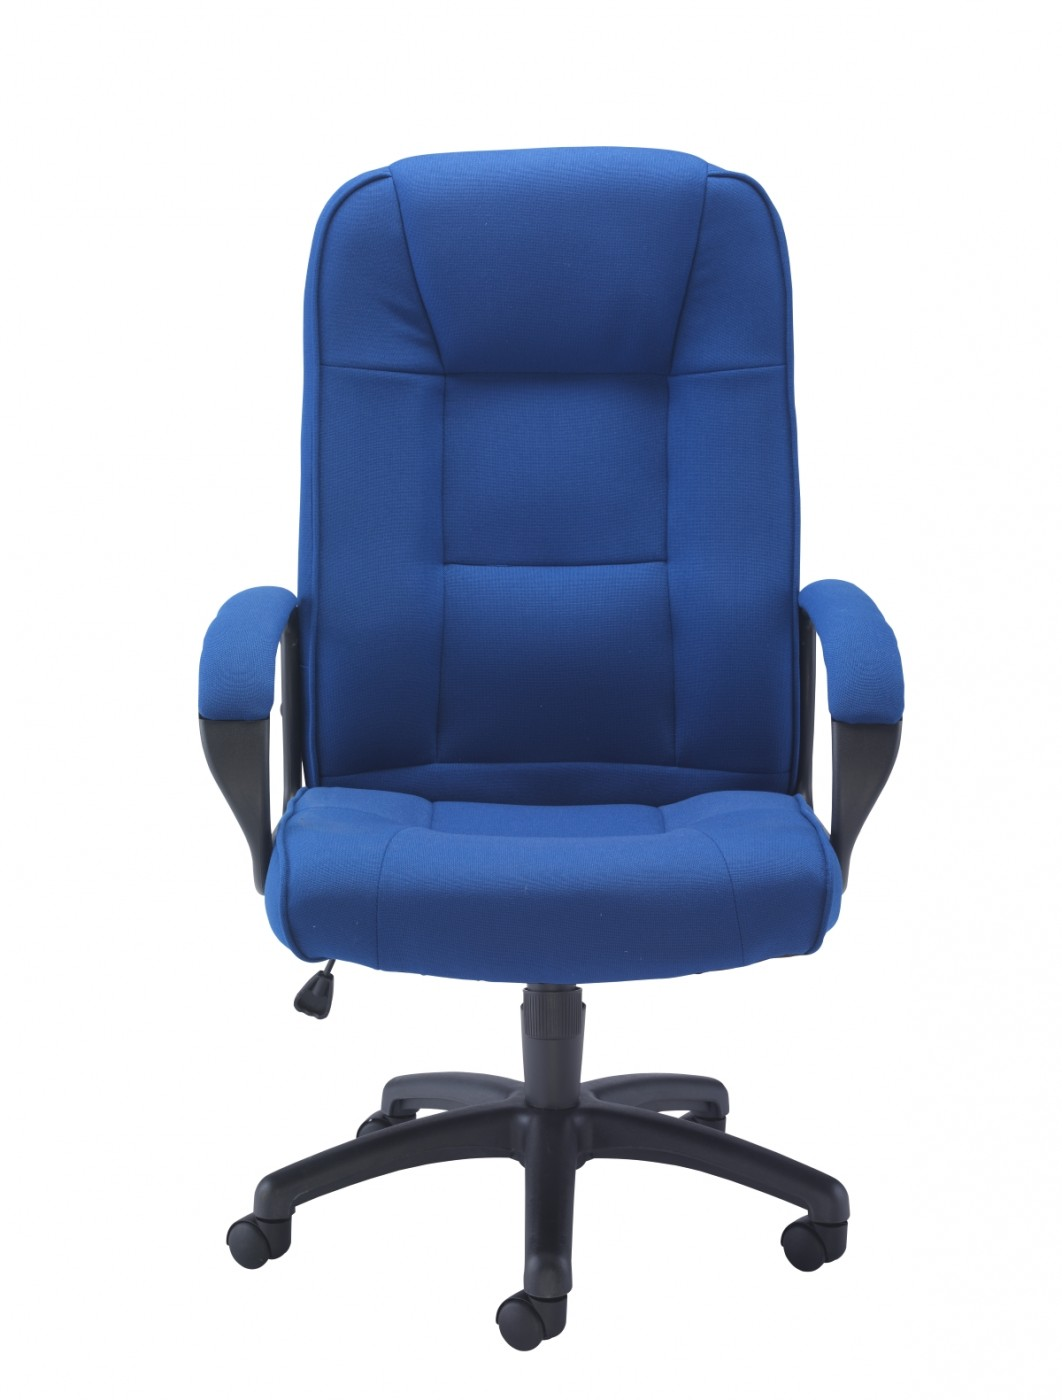 fabric office chairs uk electric recliner lift chair tc keno ch0137 121